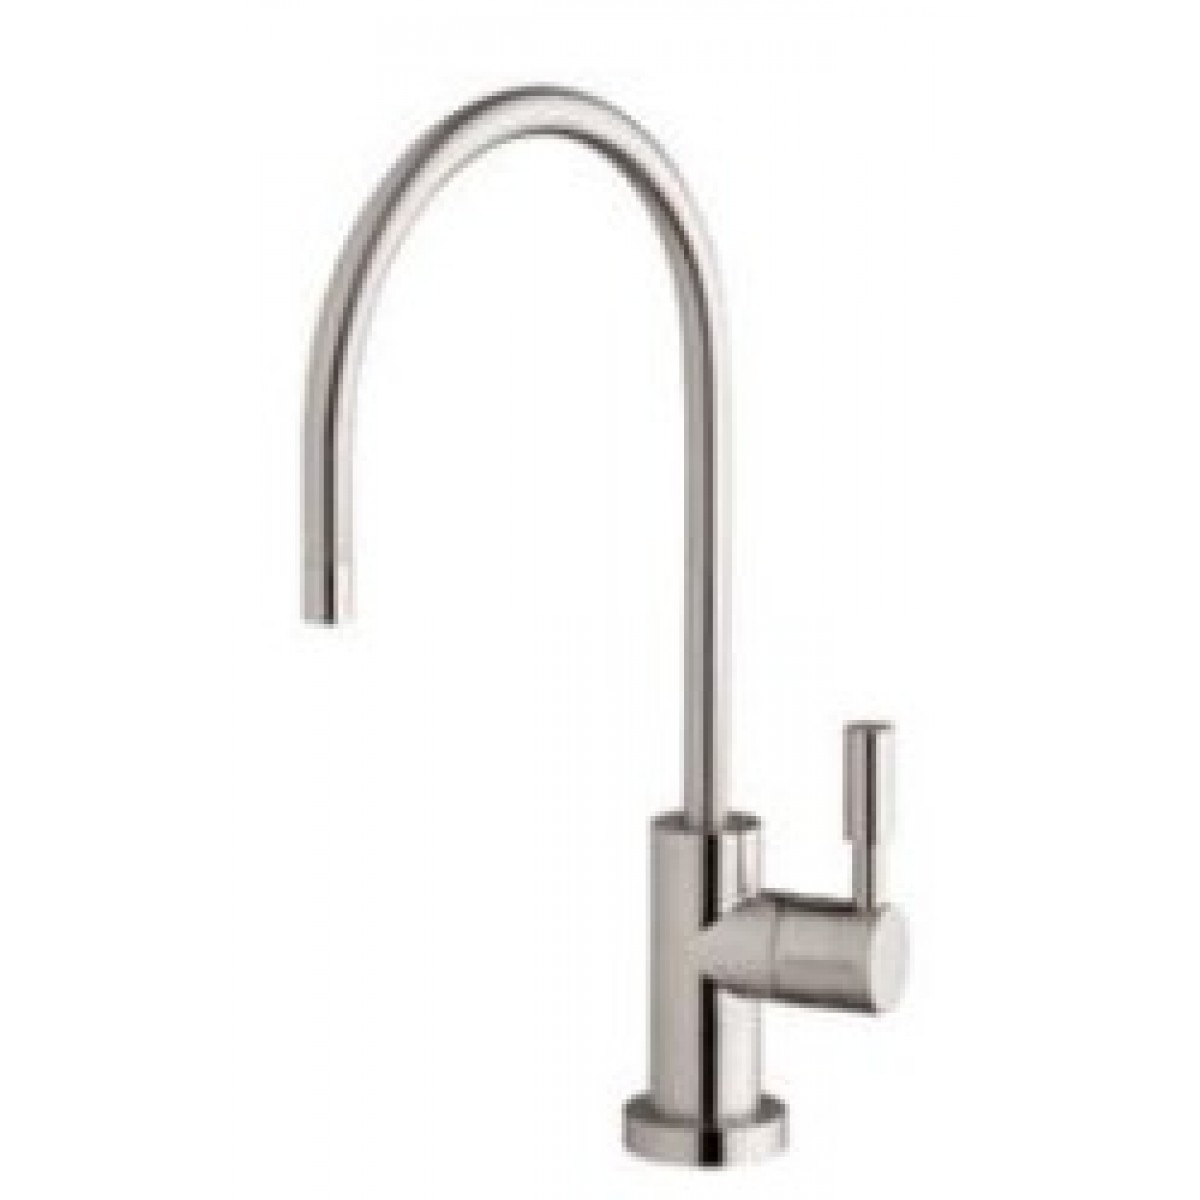 Ideas, filtered water faucet stainless filtered water faucet stainless replacement faucets for point of use water waterfilters 1200 x 1200  .